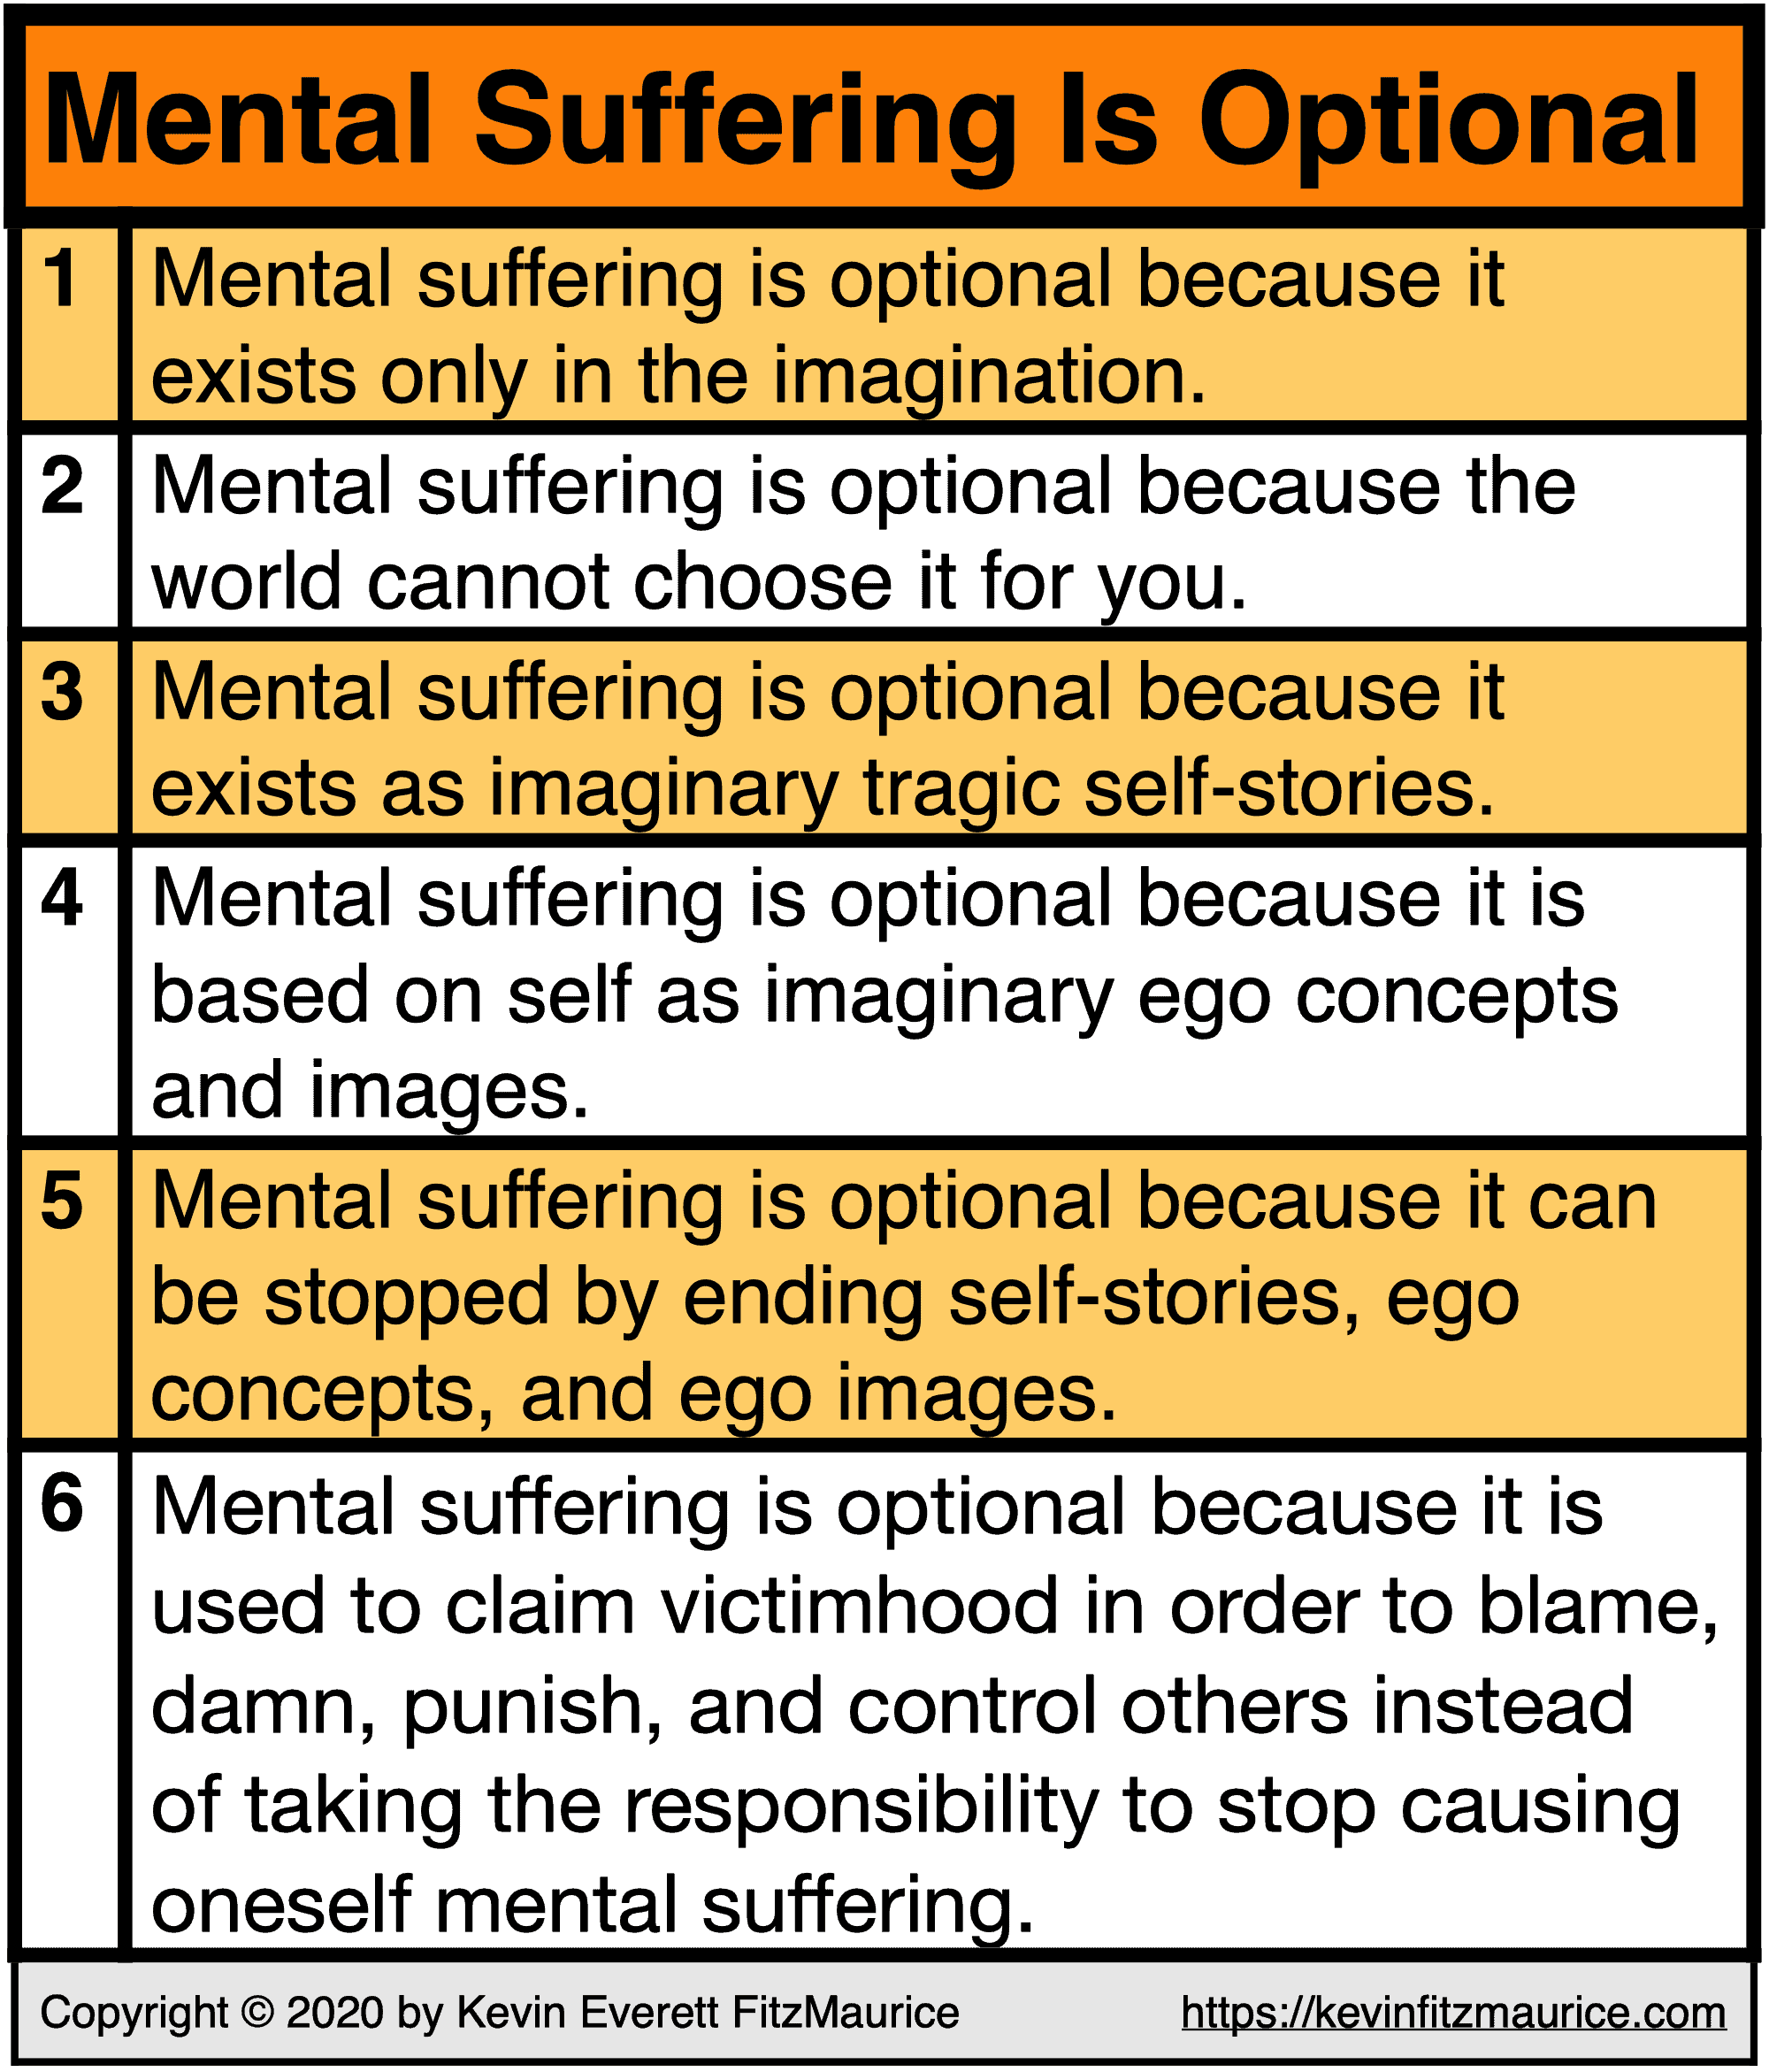 Mental Suffering Is Optional